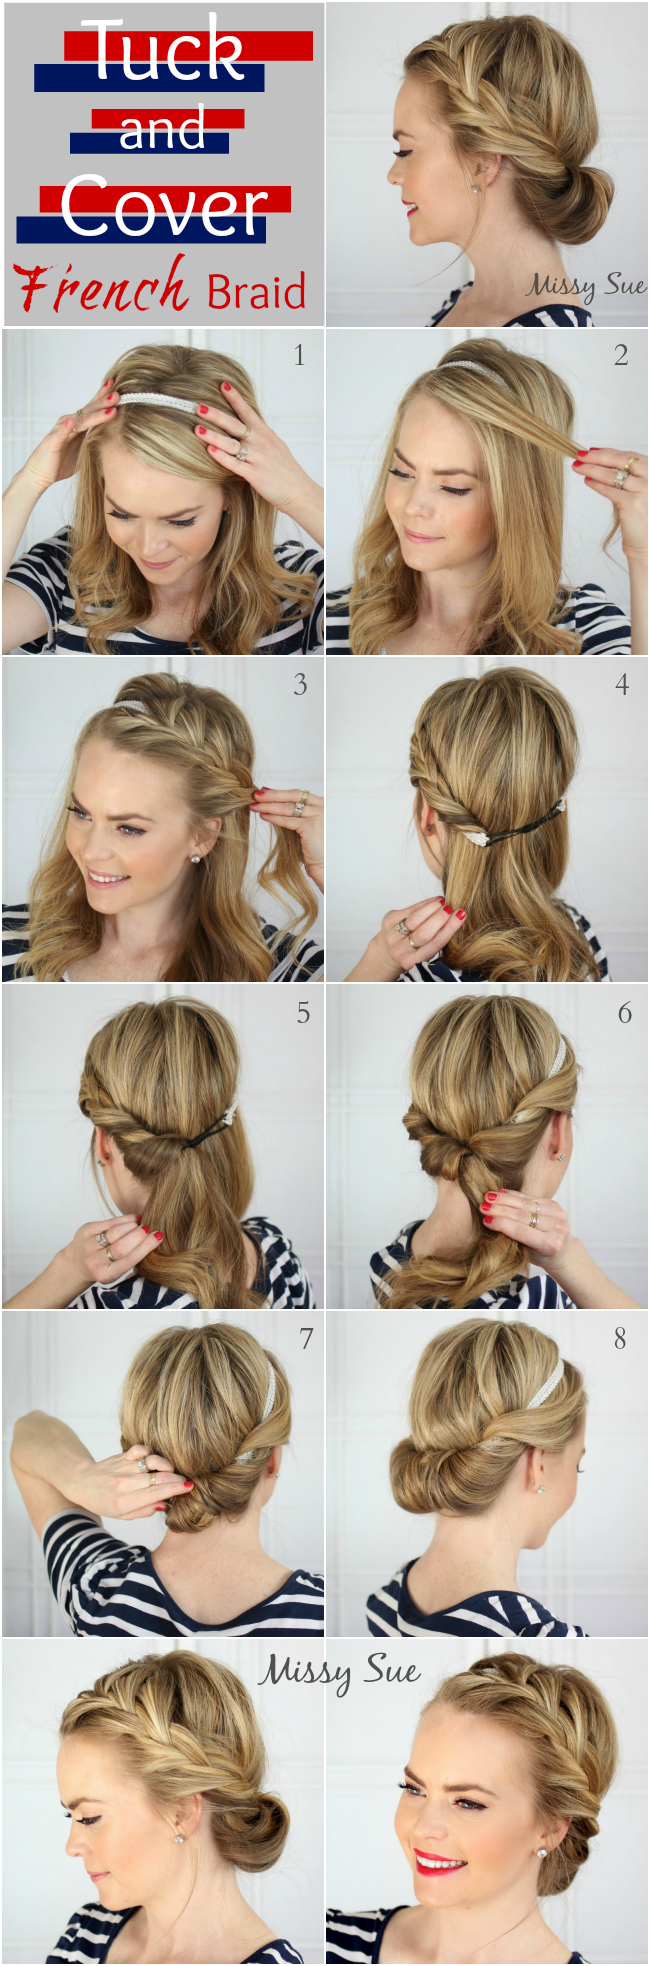 Astonishing 16 Stunning Hairstyles With Step By Step Tutorials Pretty Designs Hairstyles For Women Draintrainus